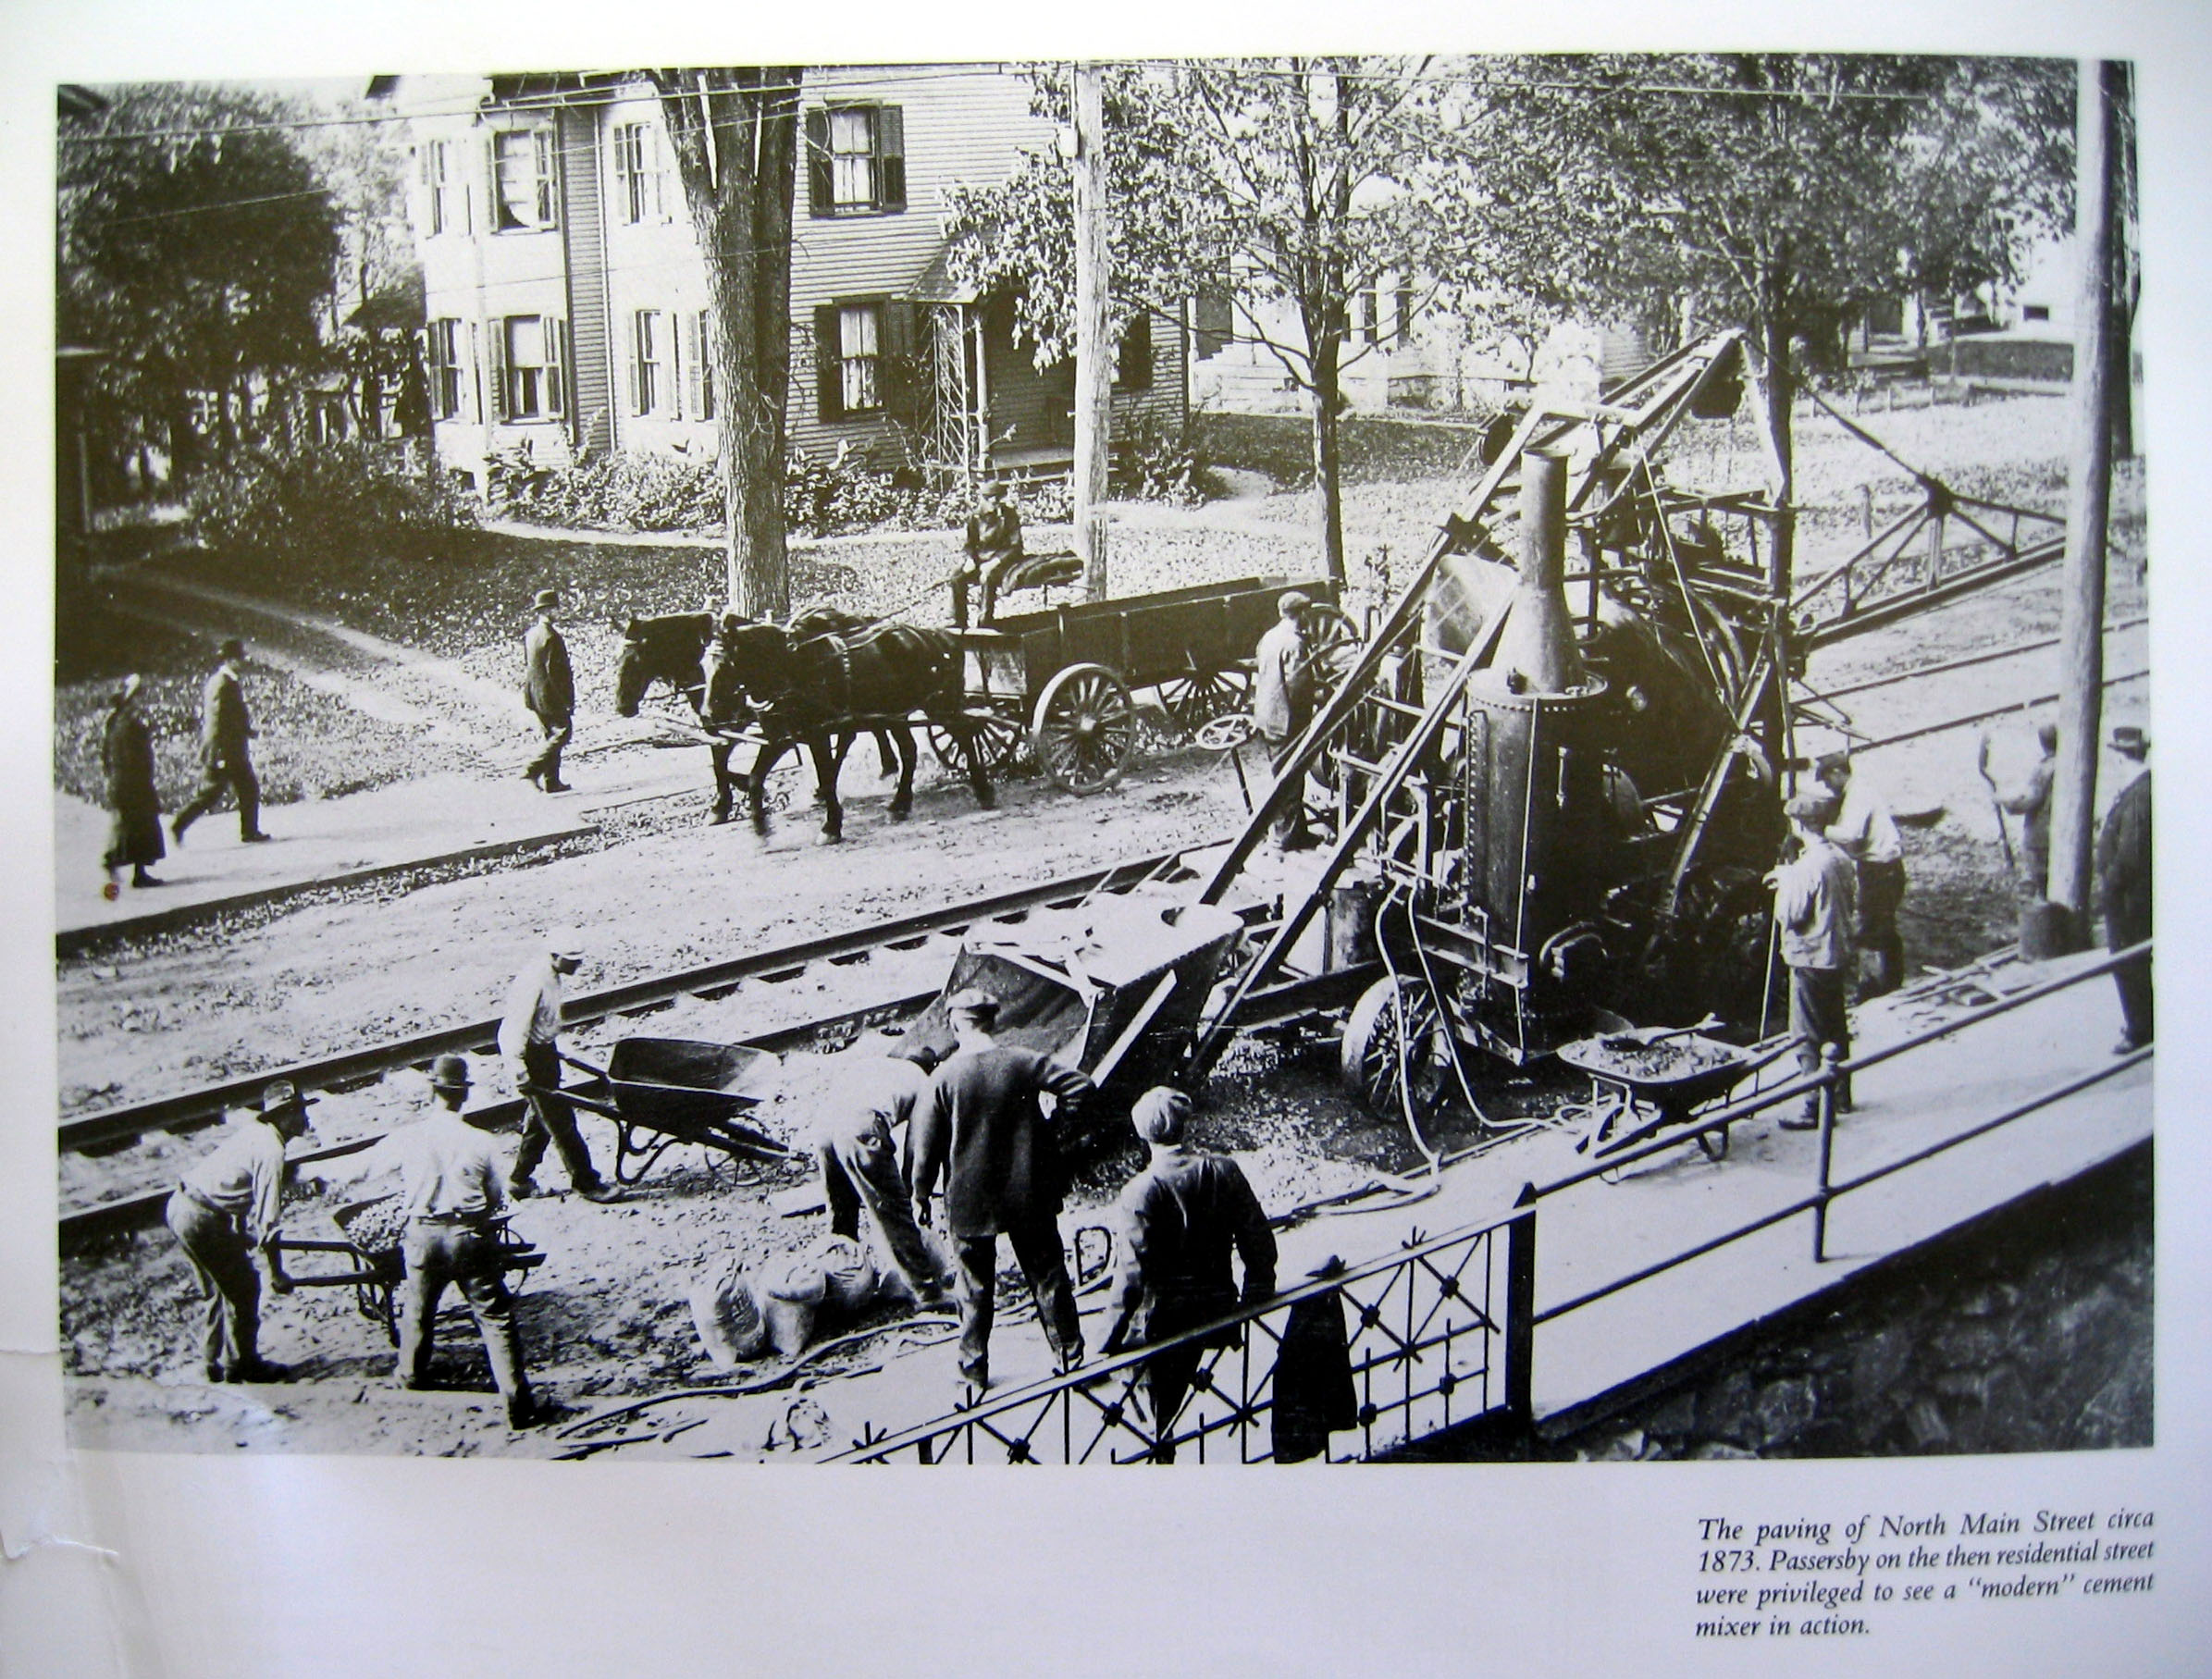 Paving North Main Street 1873